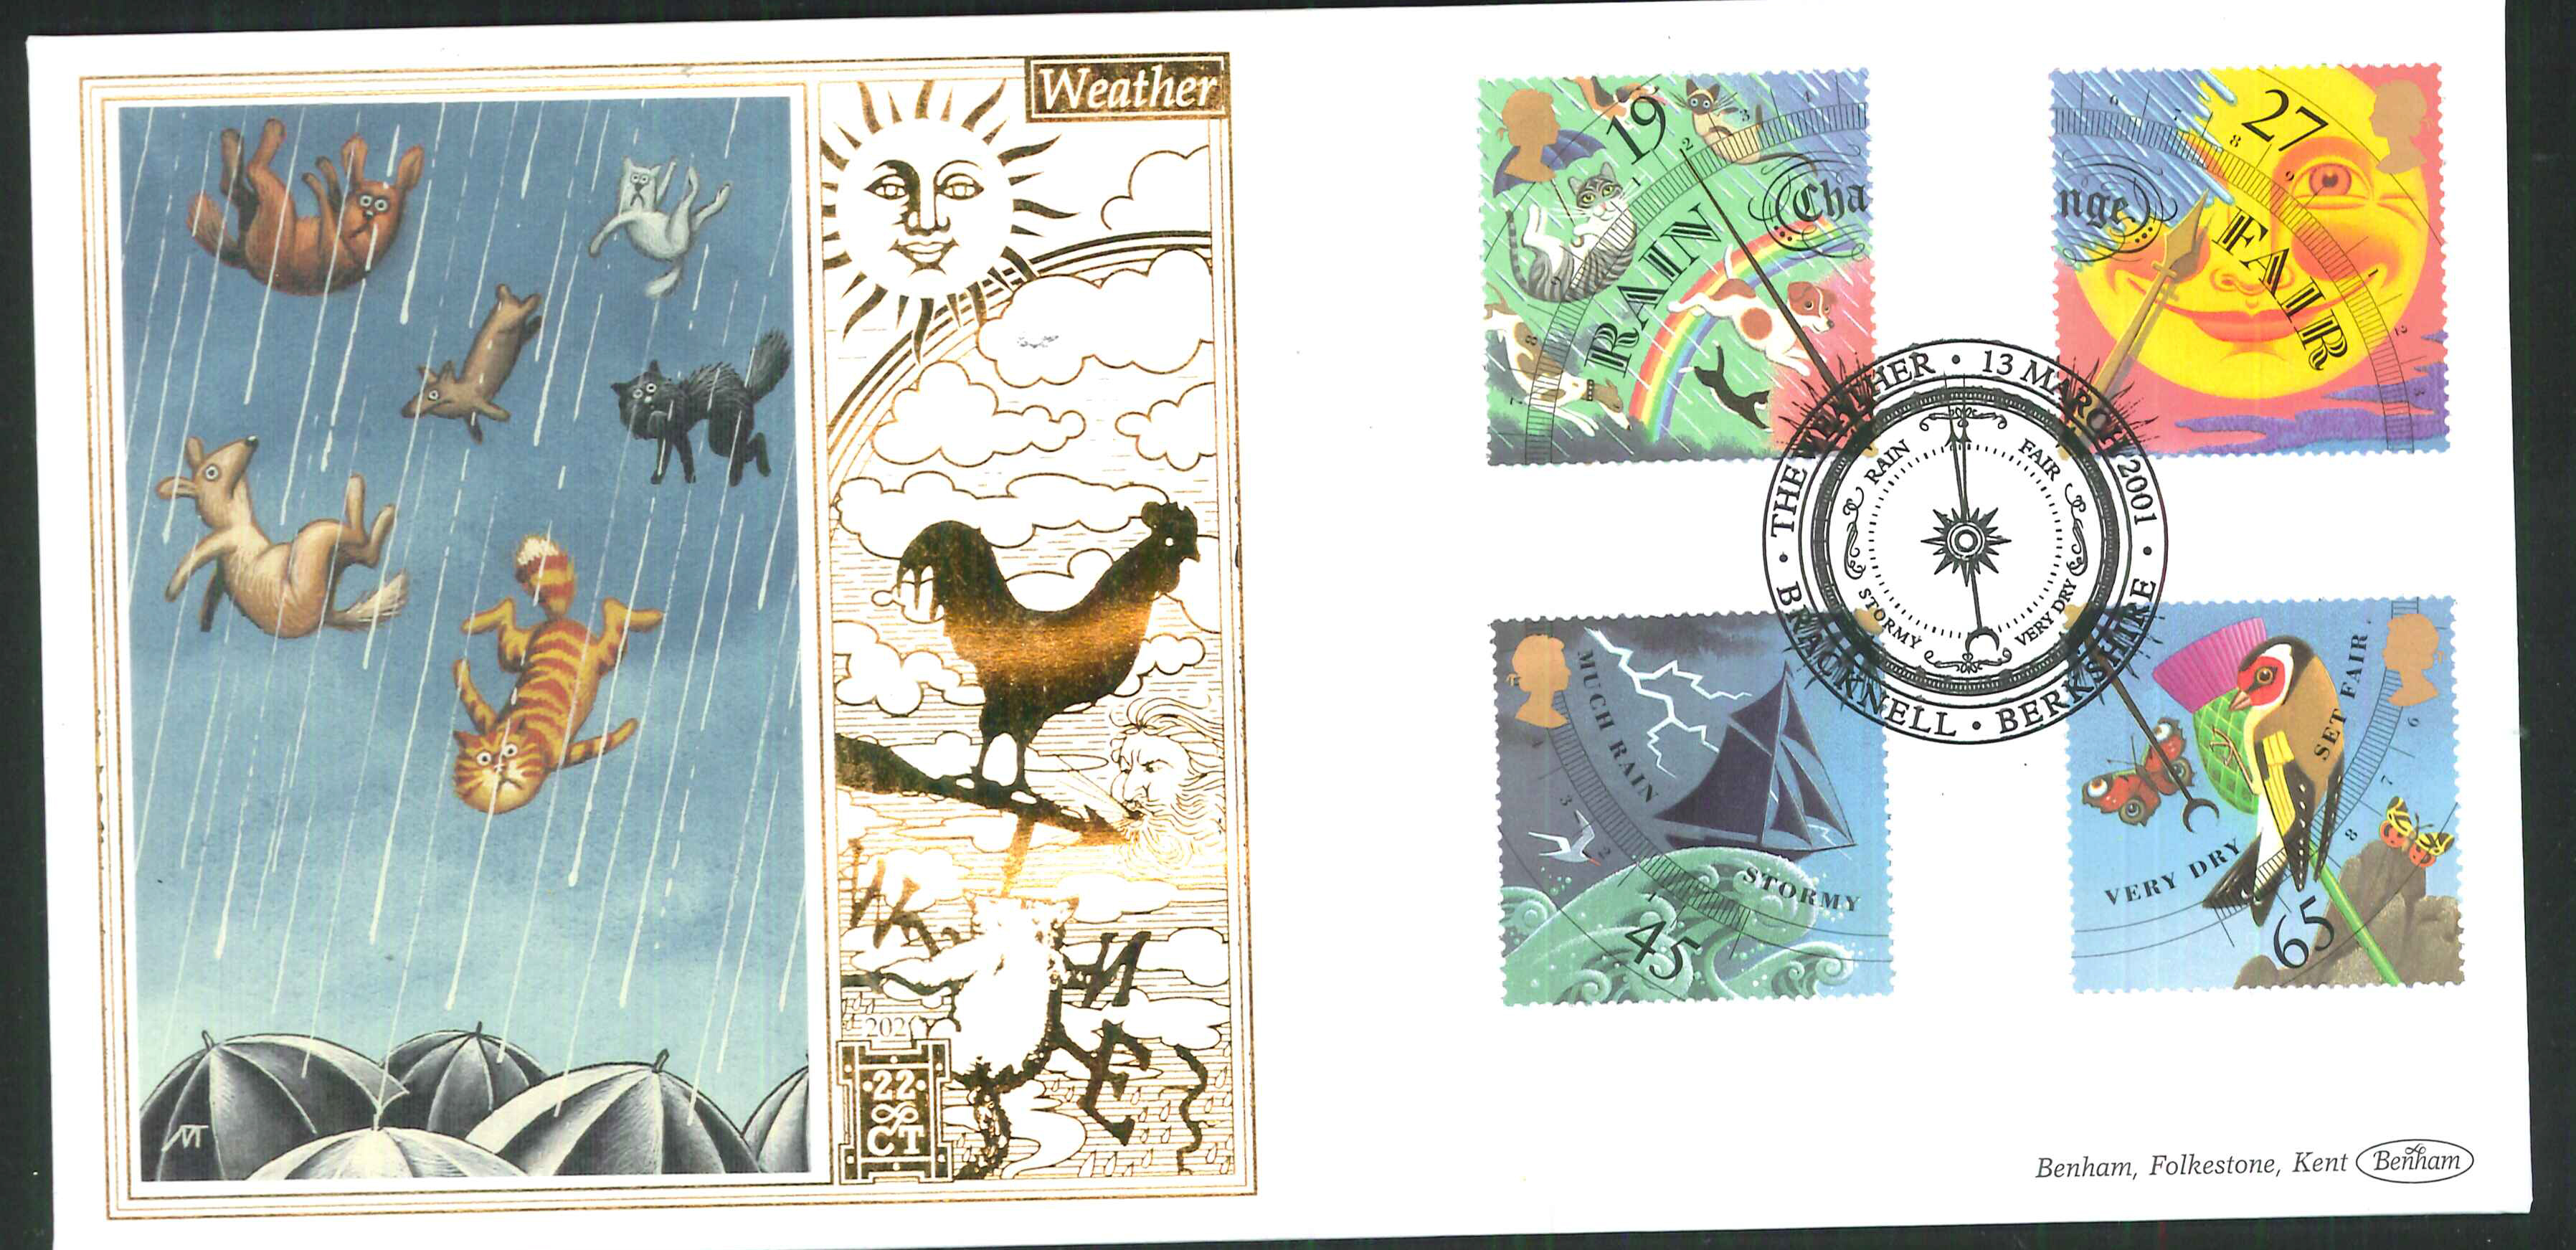 2001 -Weather FDC Benham 22ct Gold 500 Bracknell Postmark